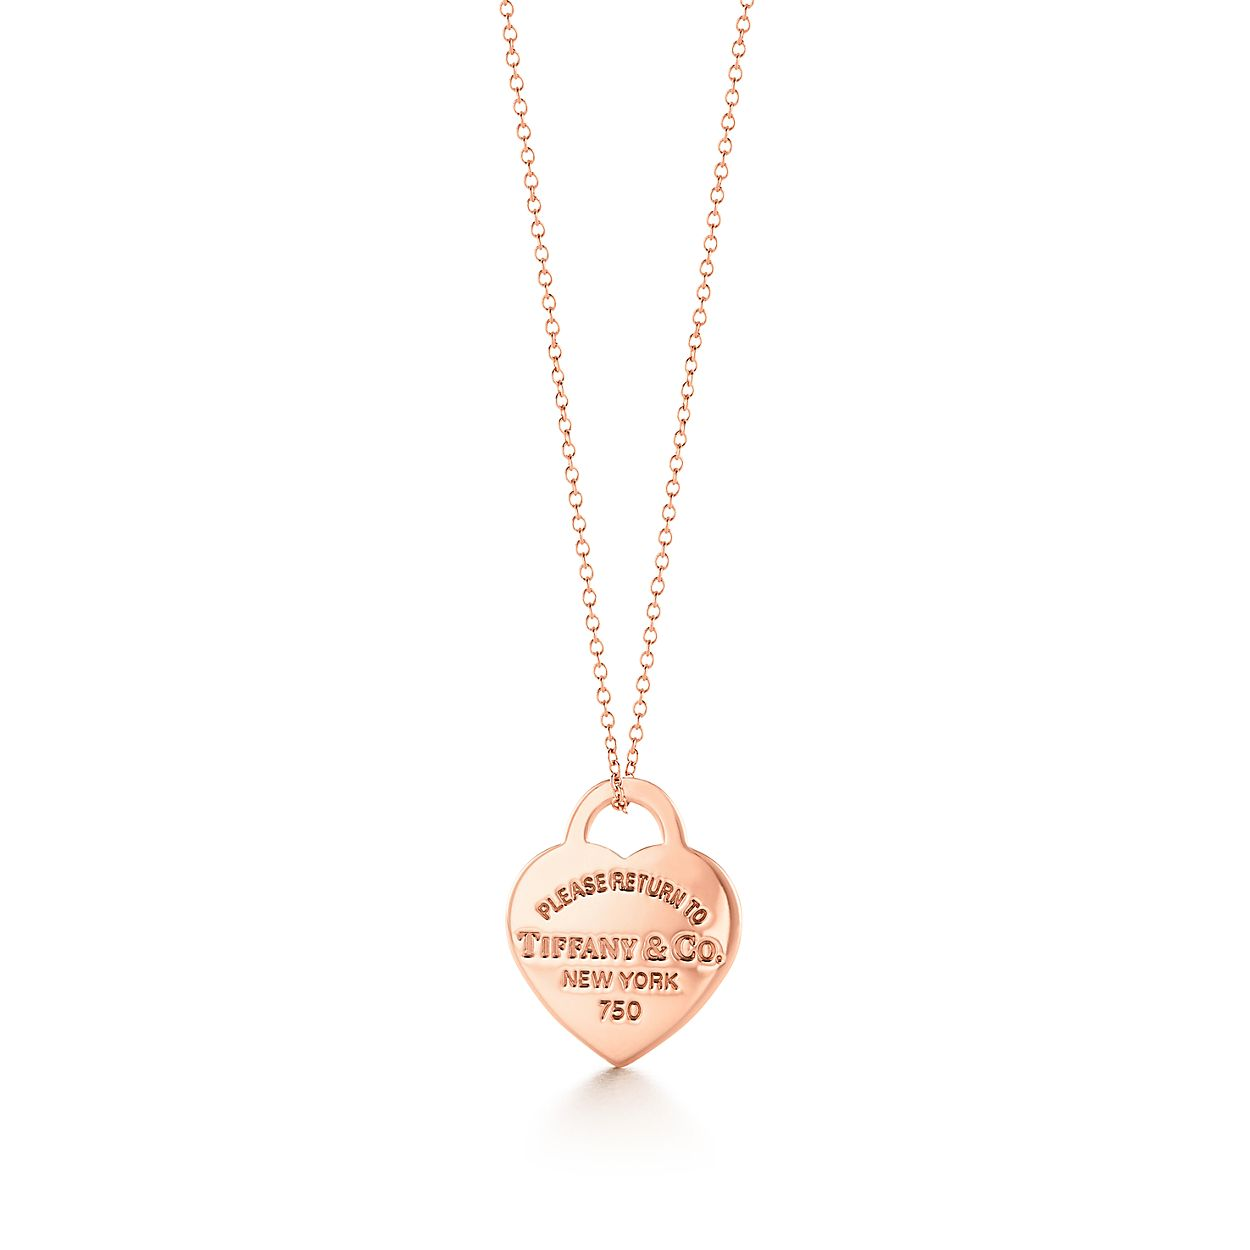 Return To Tiffany Heart Tag Pendant In 18k Rose Gold Small Tiffany Co